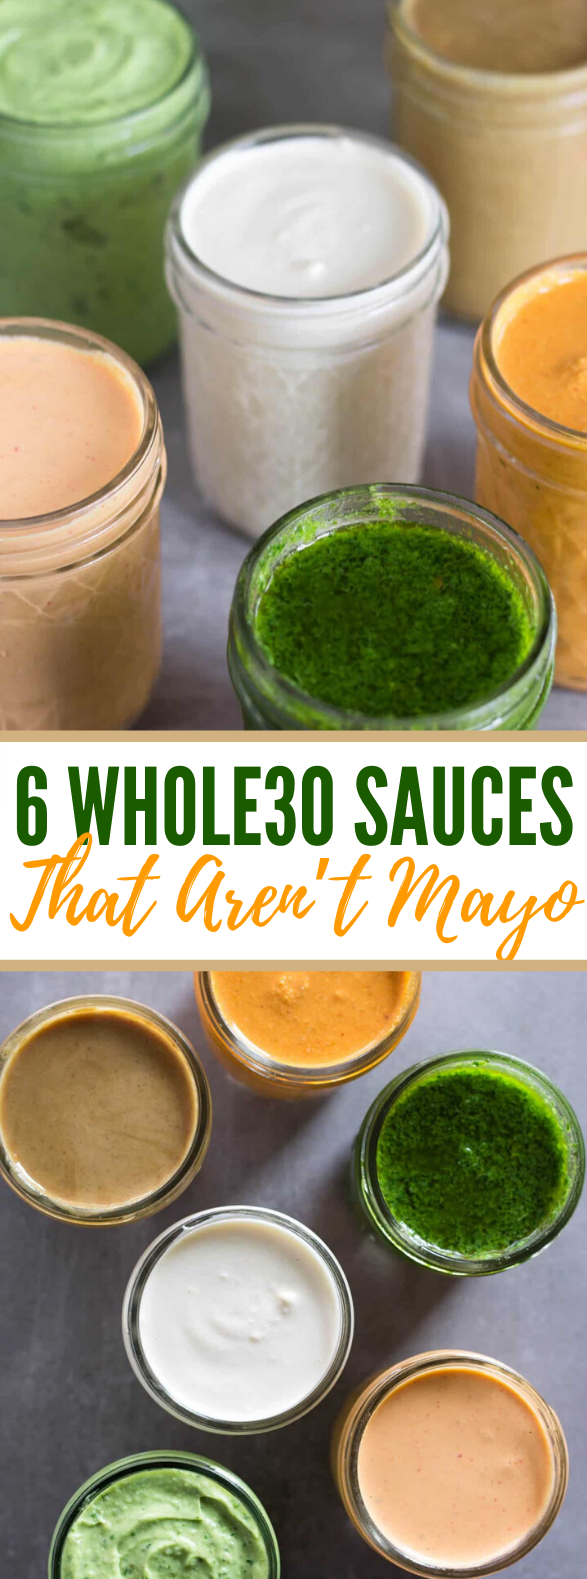 6 WHOLE30 SAUCES THAT AREN'T MAYO #healthy #paleo